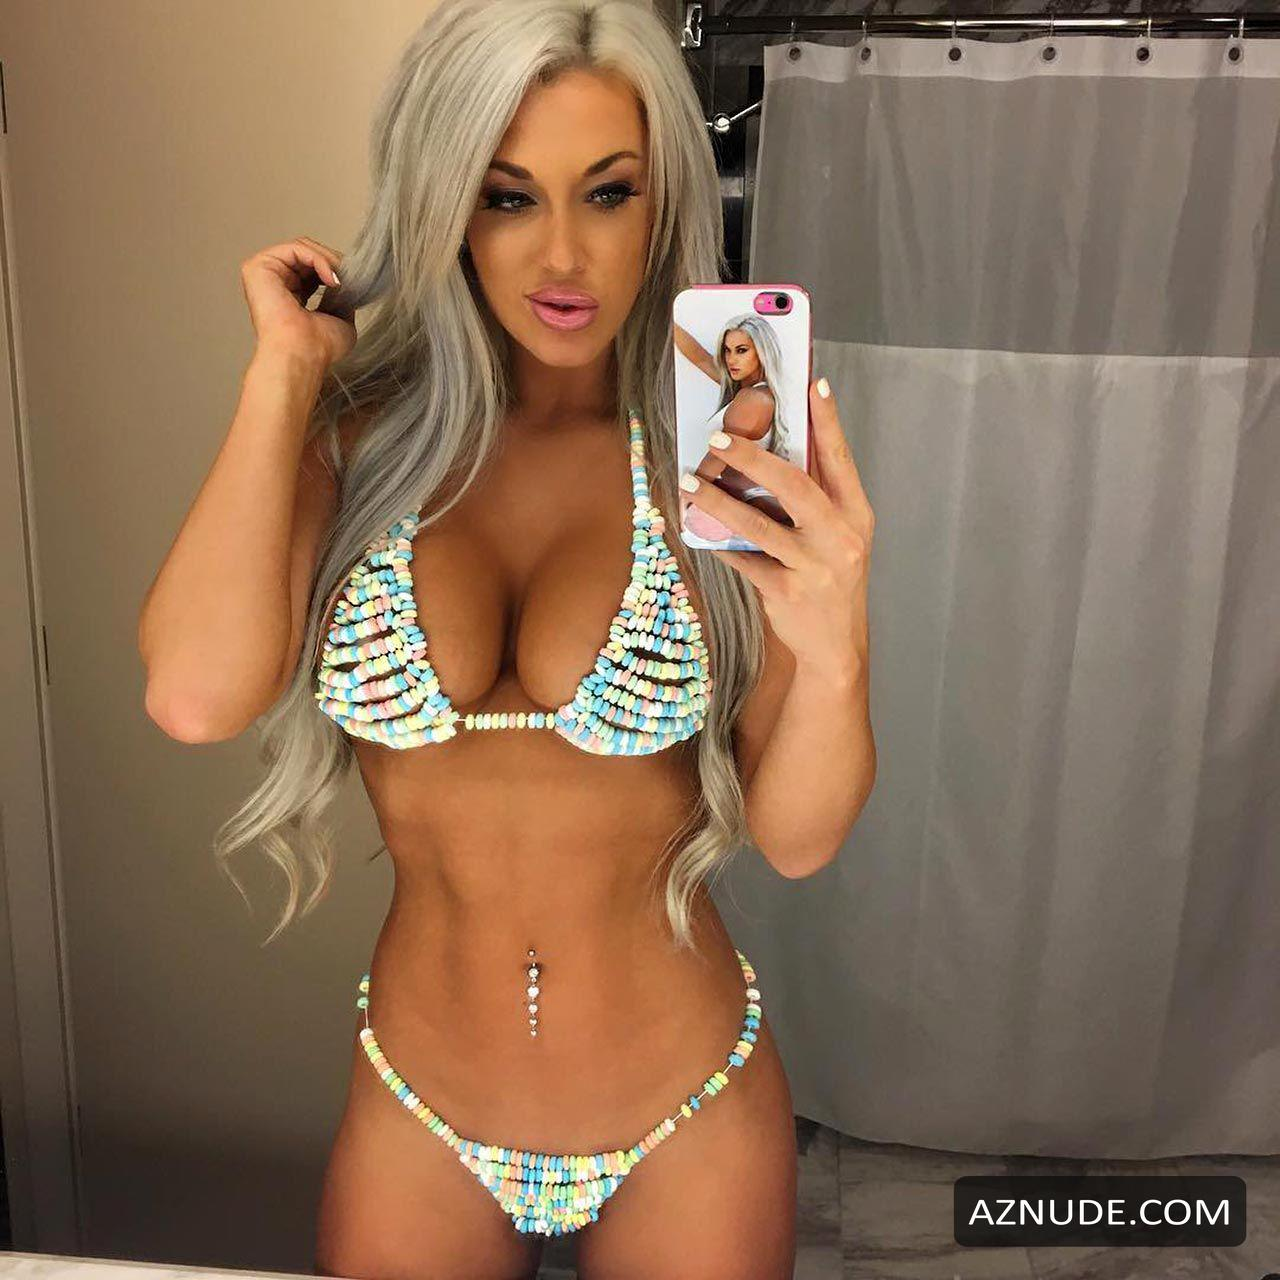 Laci Kay Somers Nude And Sexy Photosvideos From Her -2853